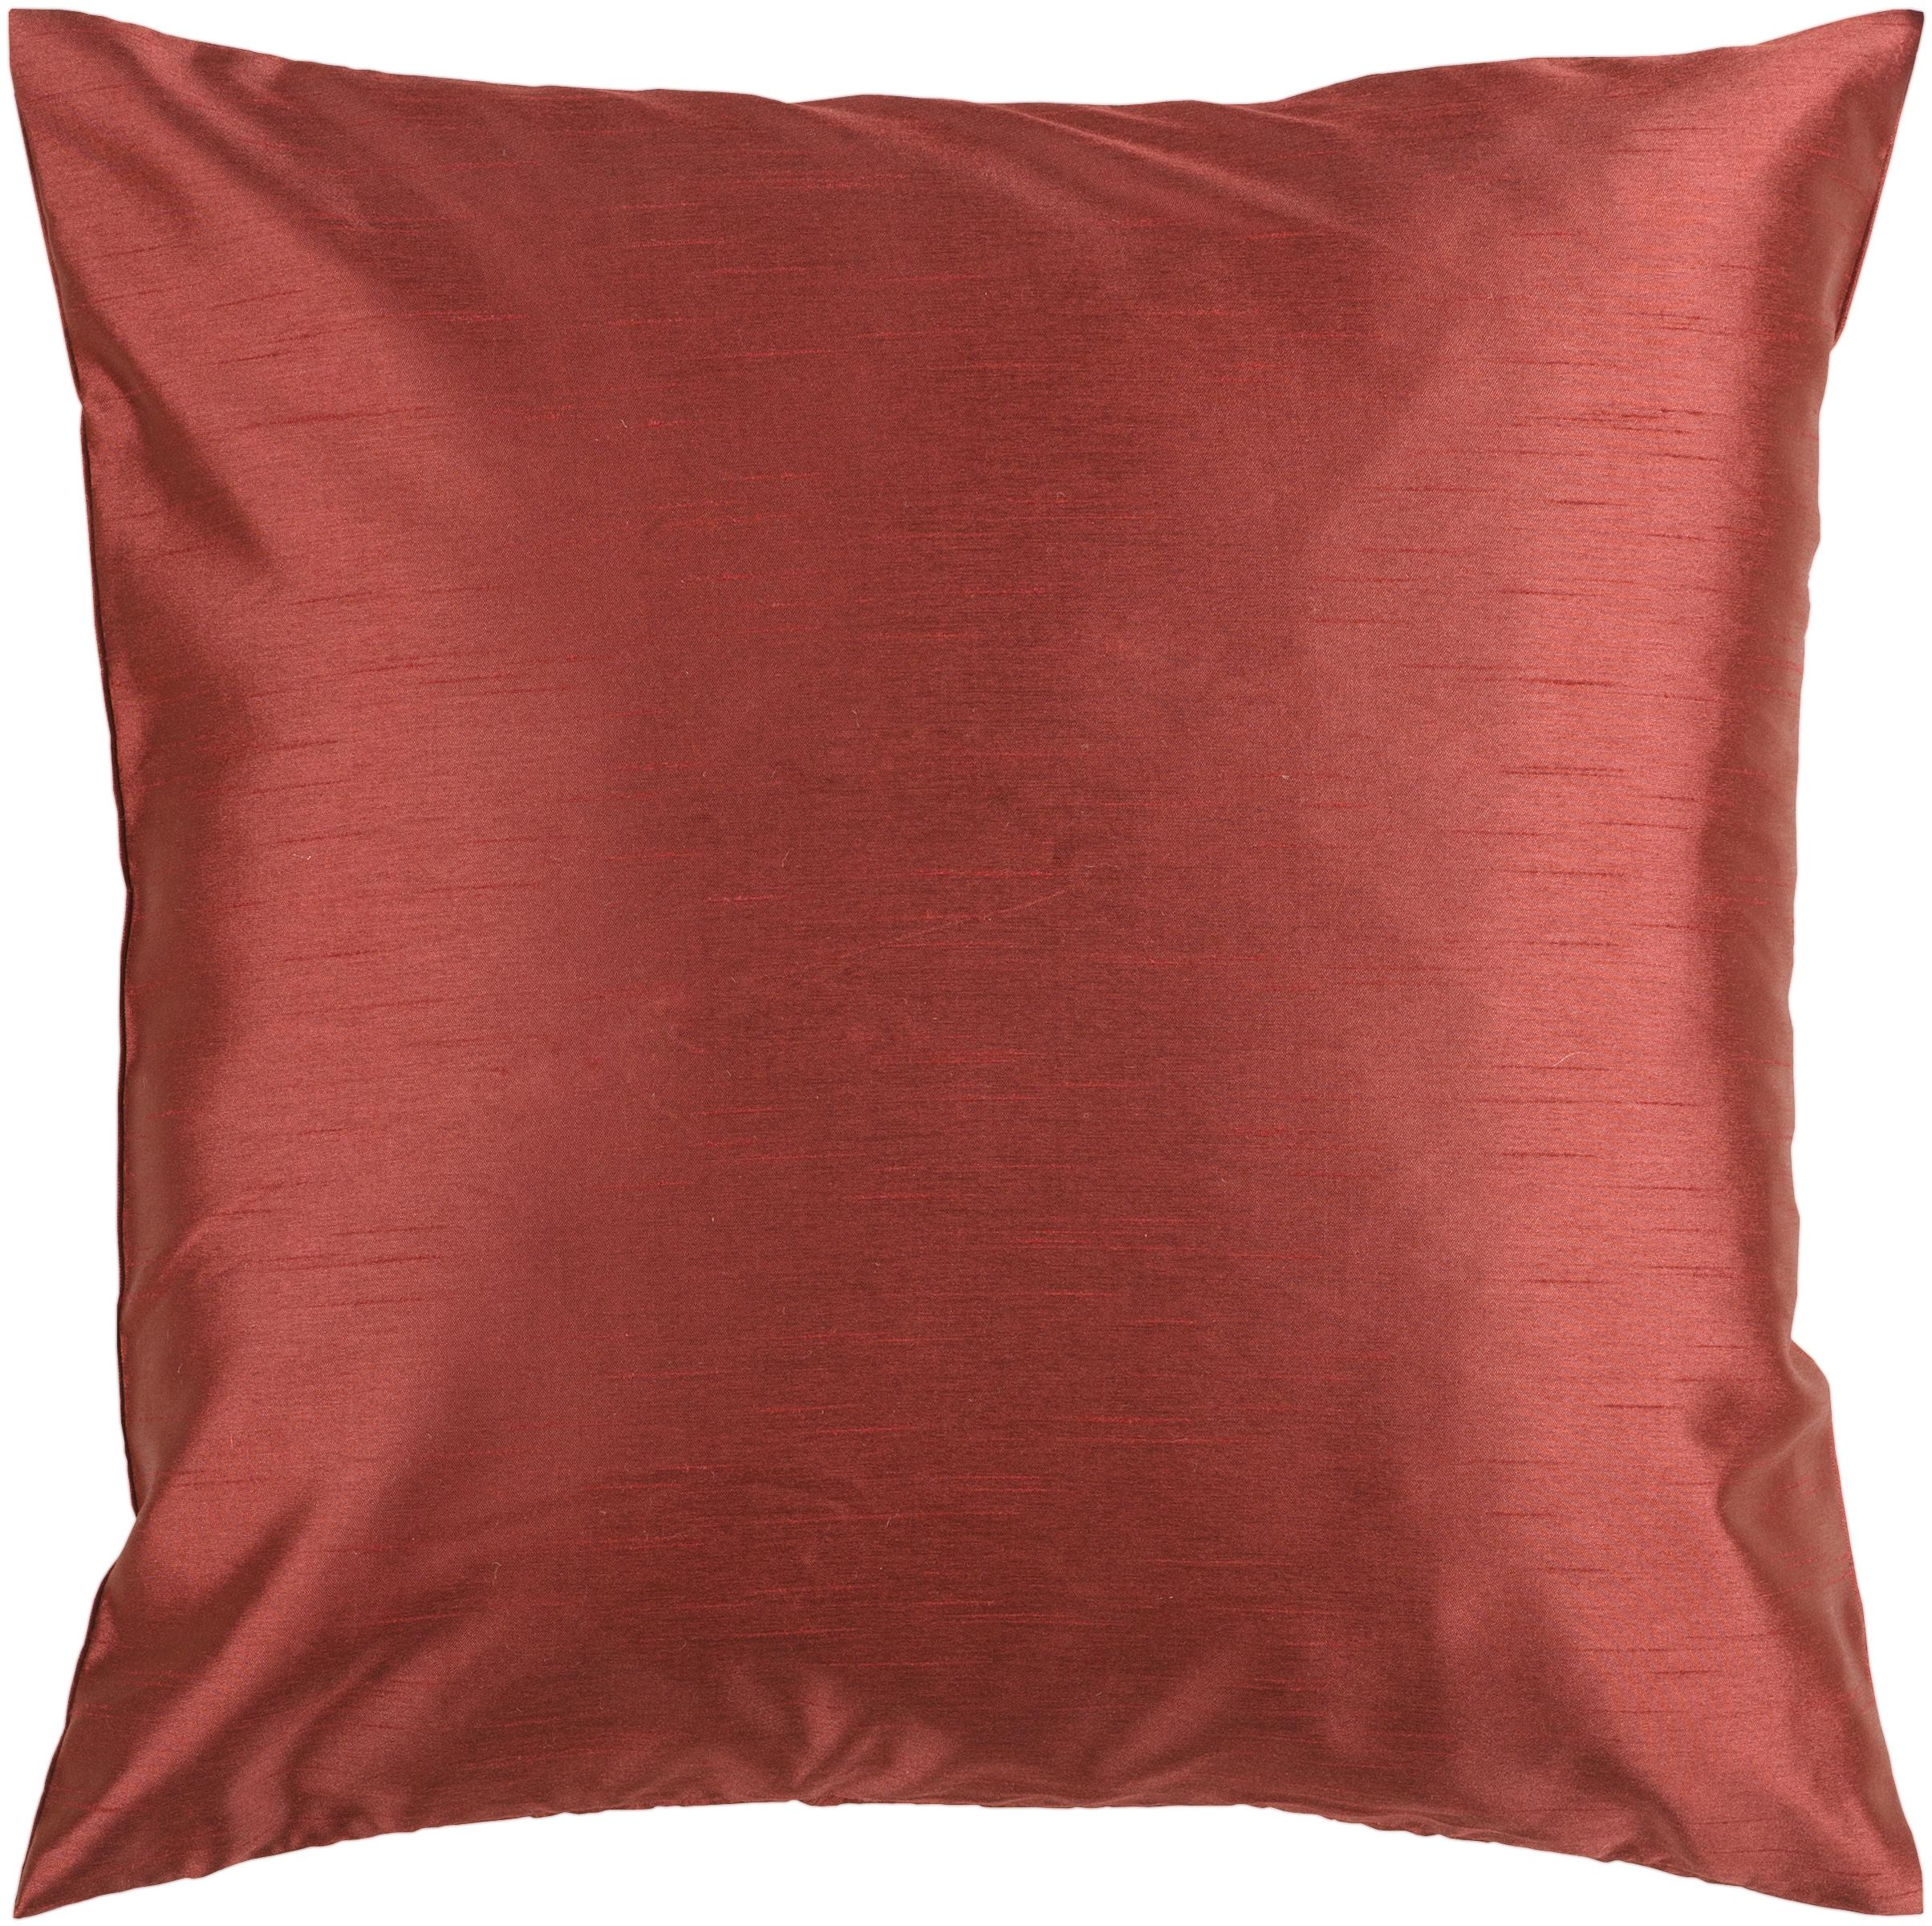 "Surya Pillows 18"" x 18"" Pillow - Item Number: HH045-1818P"